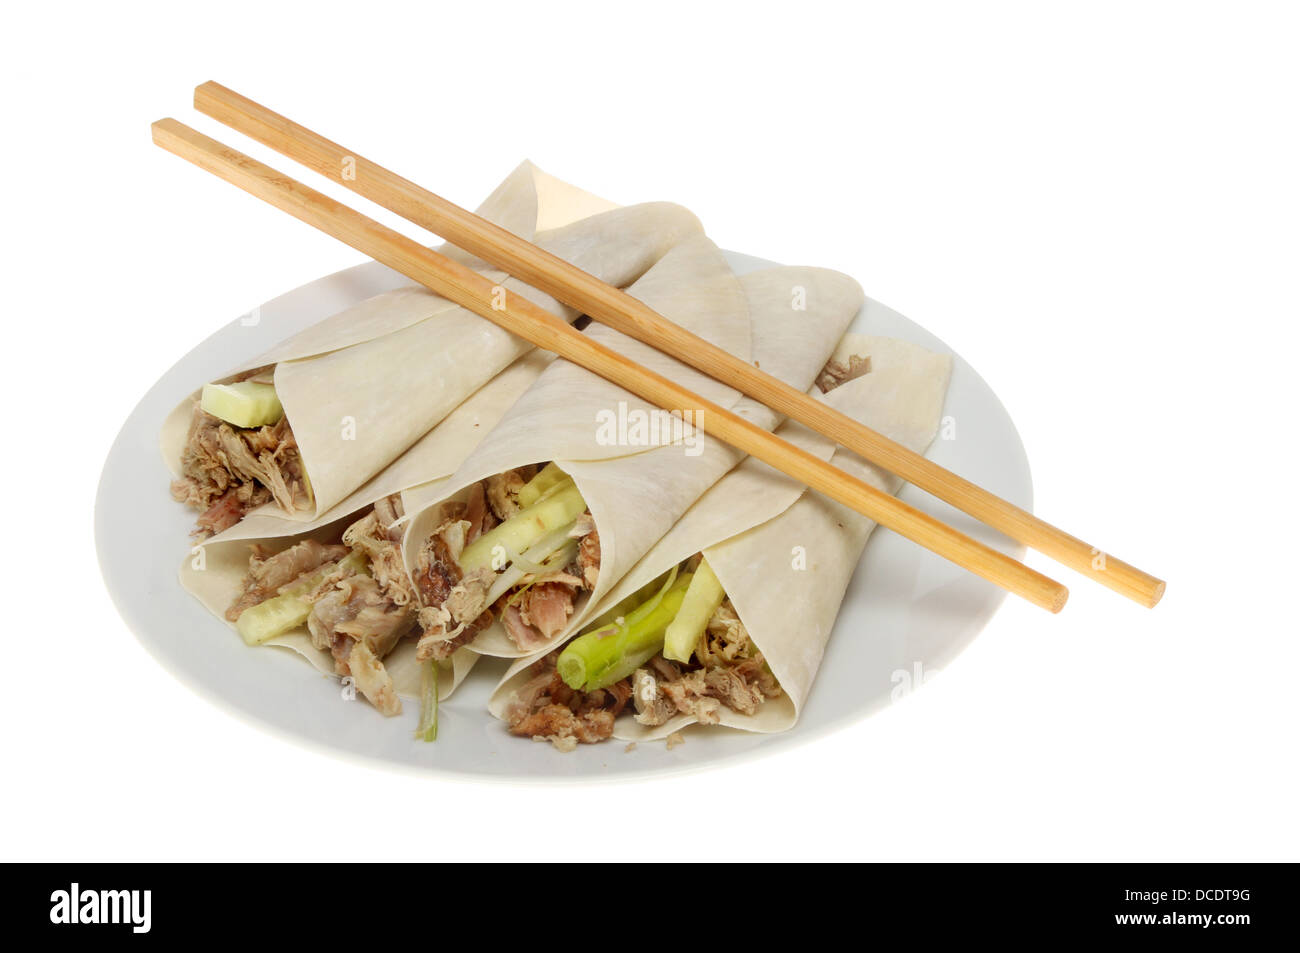 Chinese crispy duck pancakes with chopsticks on a plate isolated against white - Stock Image